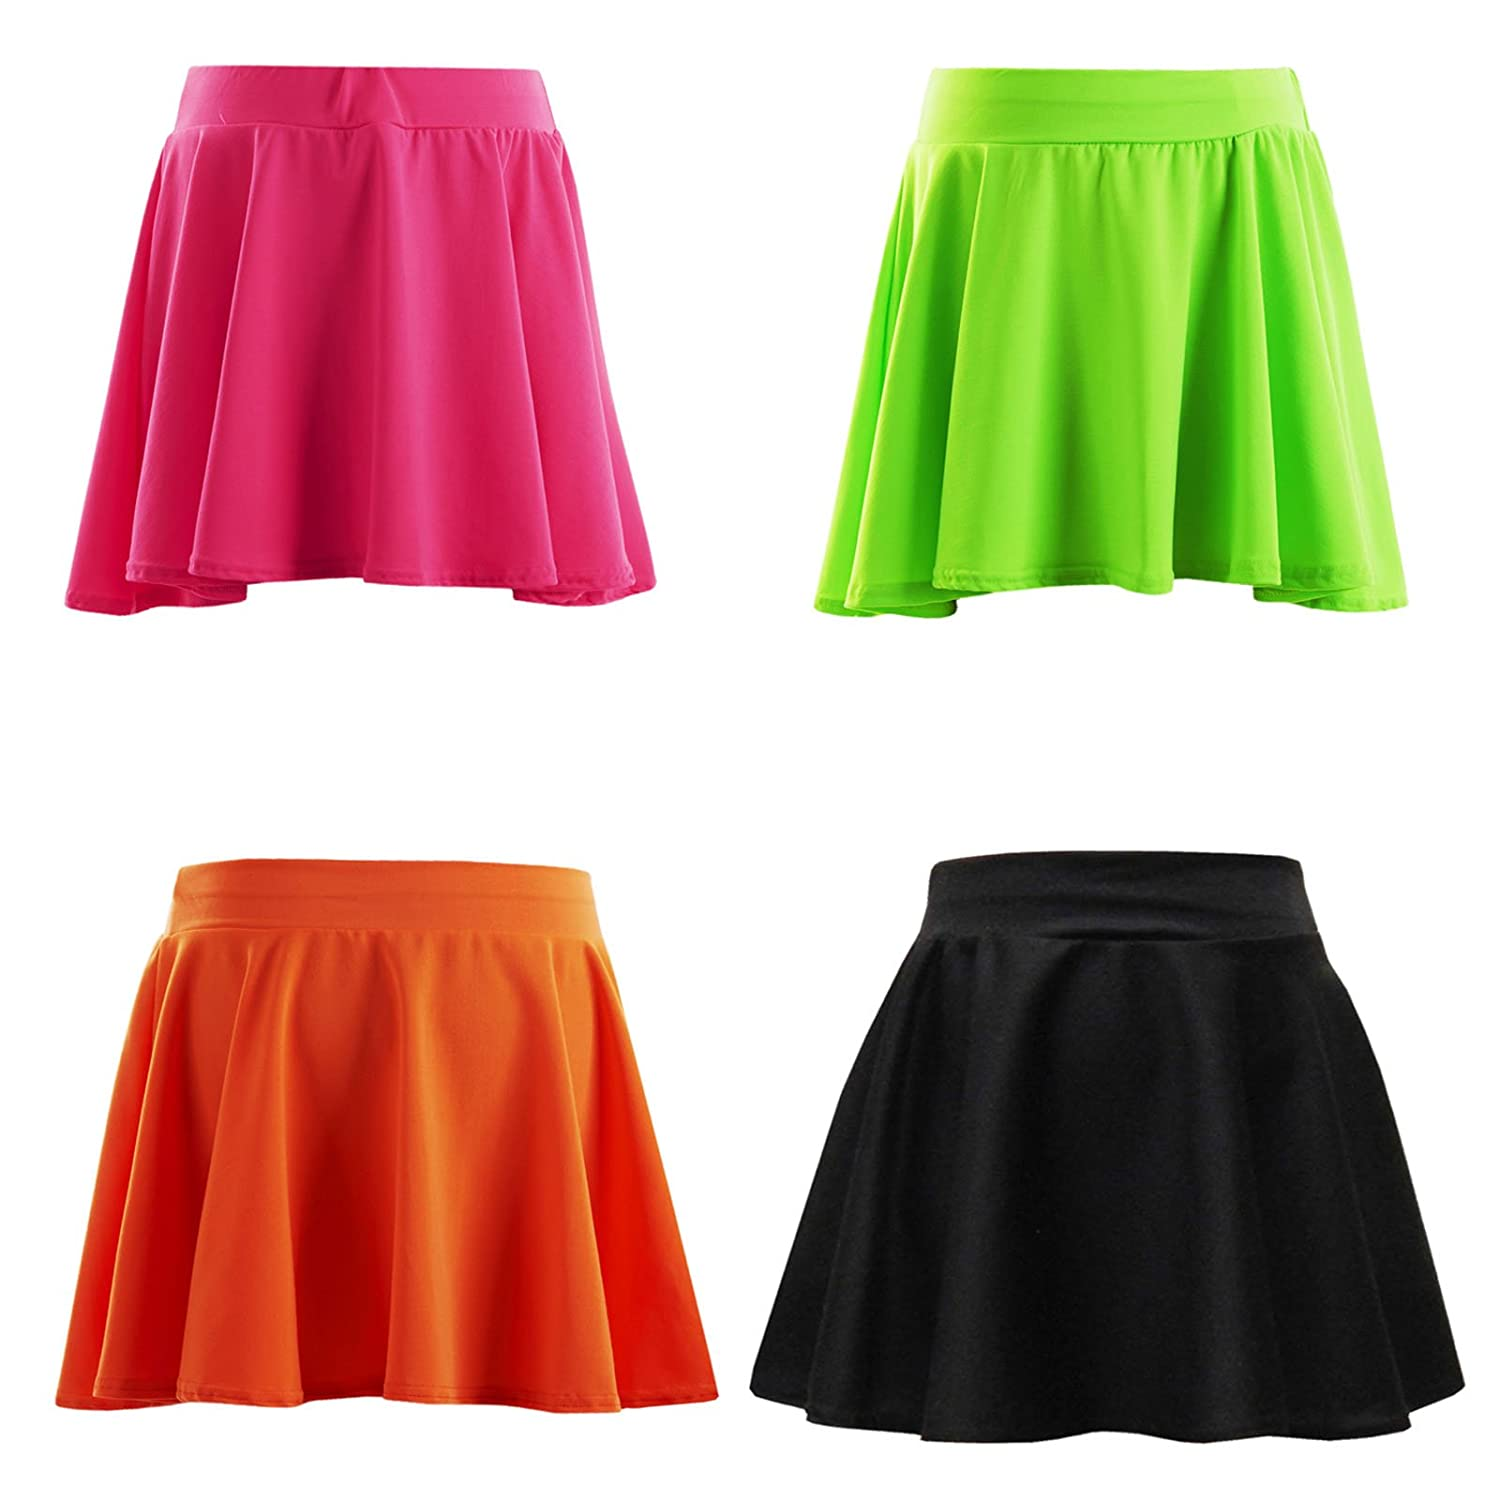 Minx New Plain Girls Skater Skirt Neon Color Kids Skater Skirt 7-13 Years